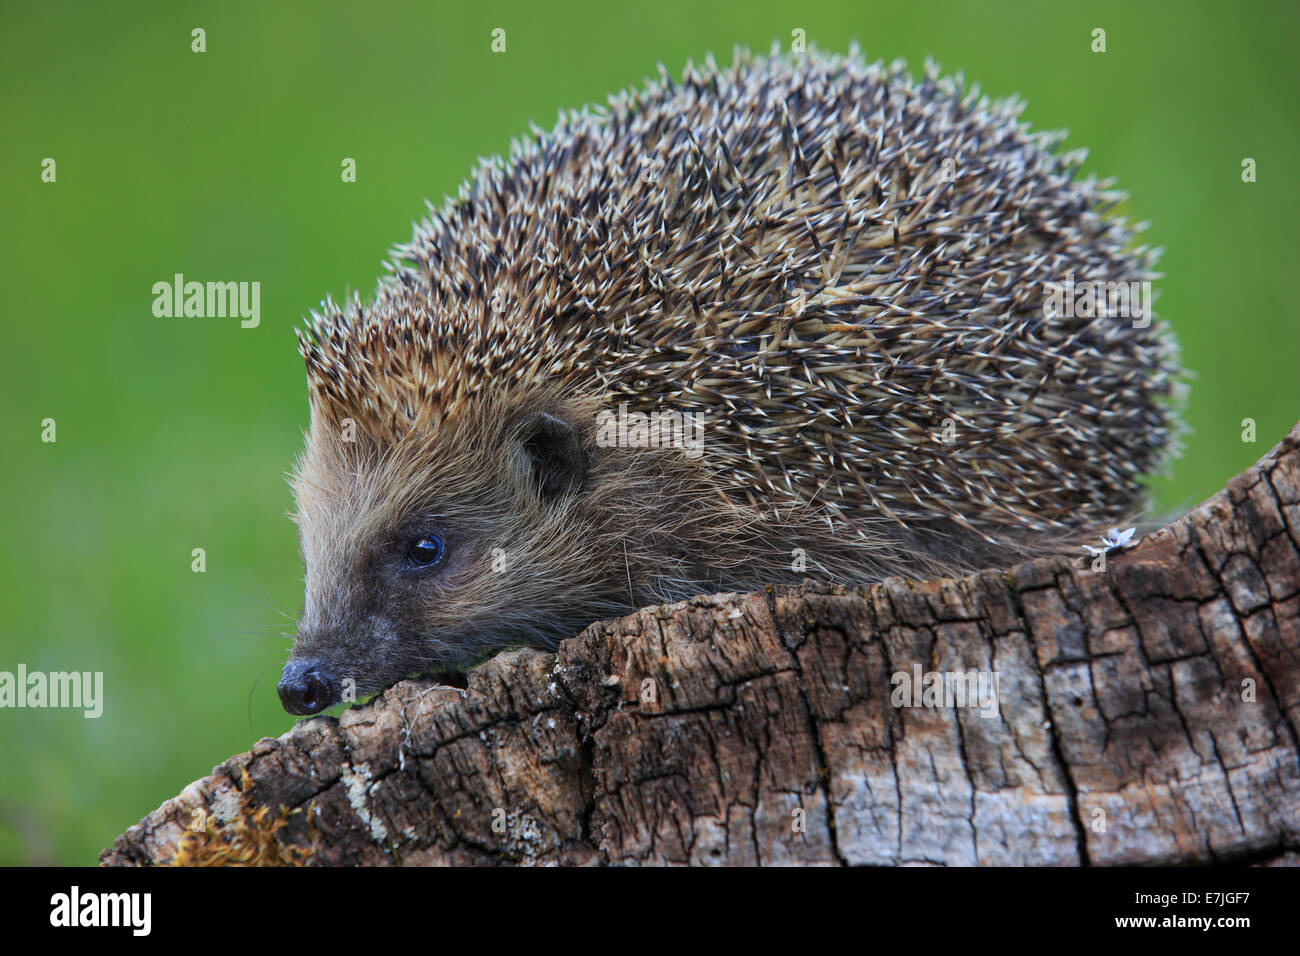 Tree stump, common hedgehog, Erinaceus europaeus, European hedgehog, spring, wood, hedgehog, insectivore, Switzerland, - Stock Image